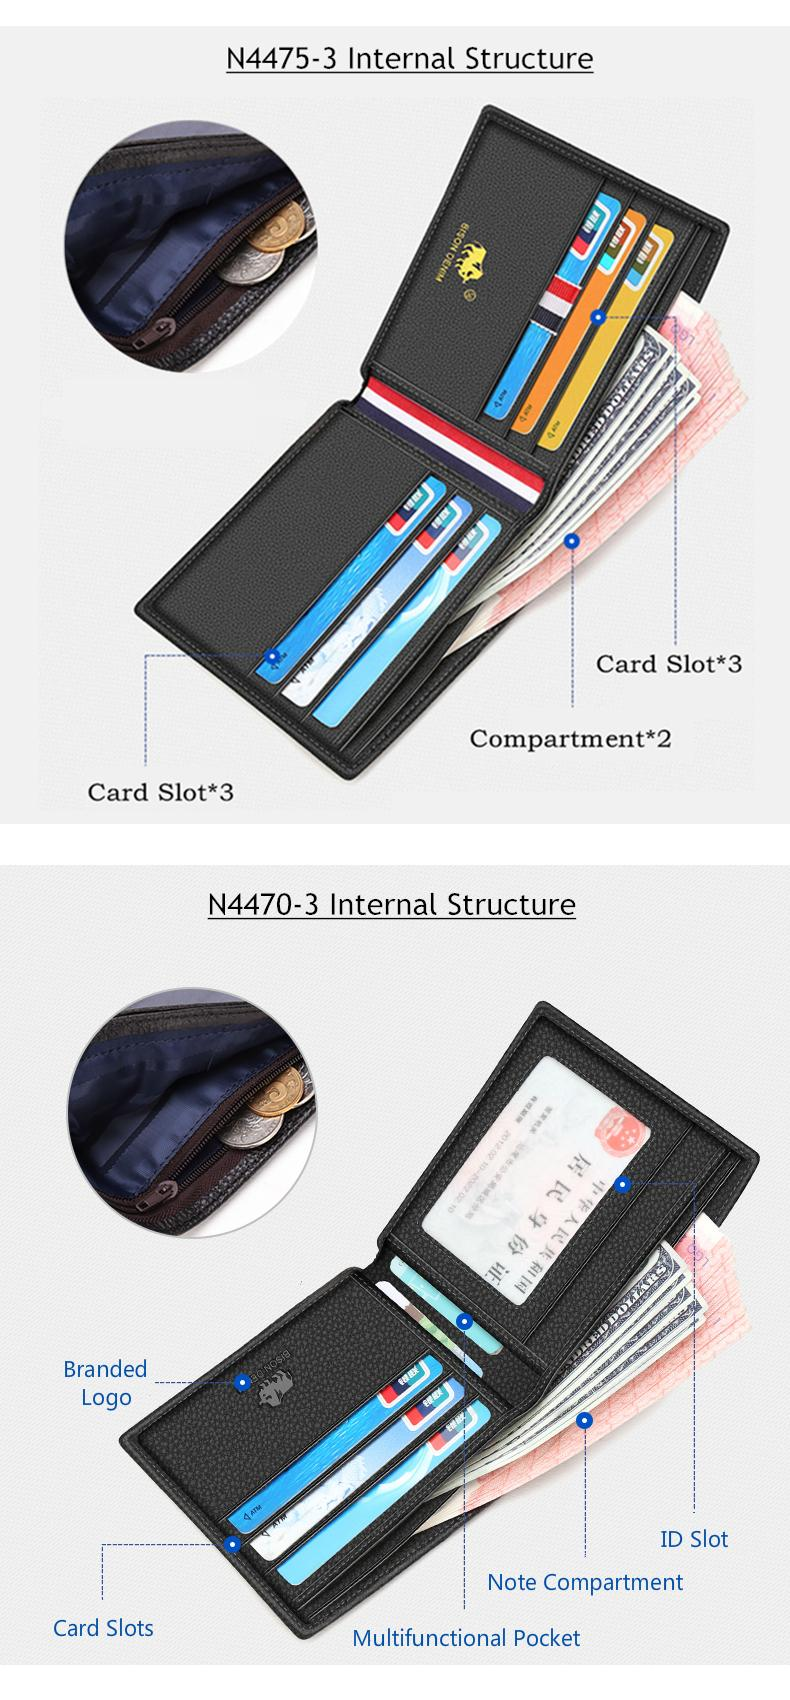 H01ad50aa75324fa58108ed8e7b8cacb6X - BISON DENIM 100% Cow Leather Wallet Men Fashion Bifold Card Holder Wallet RFID Blocking Male Short Purse High Quality N4475